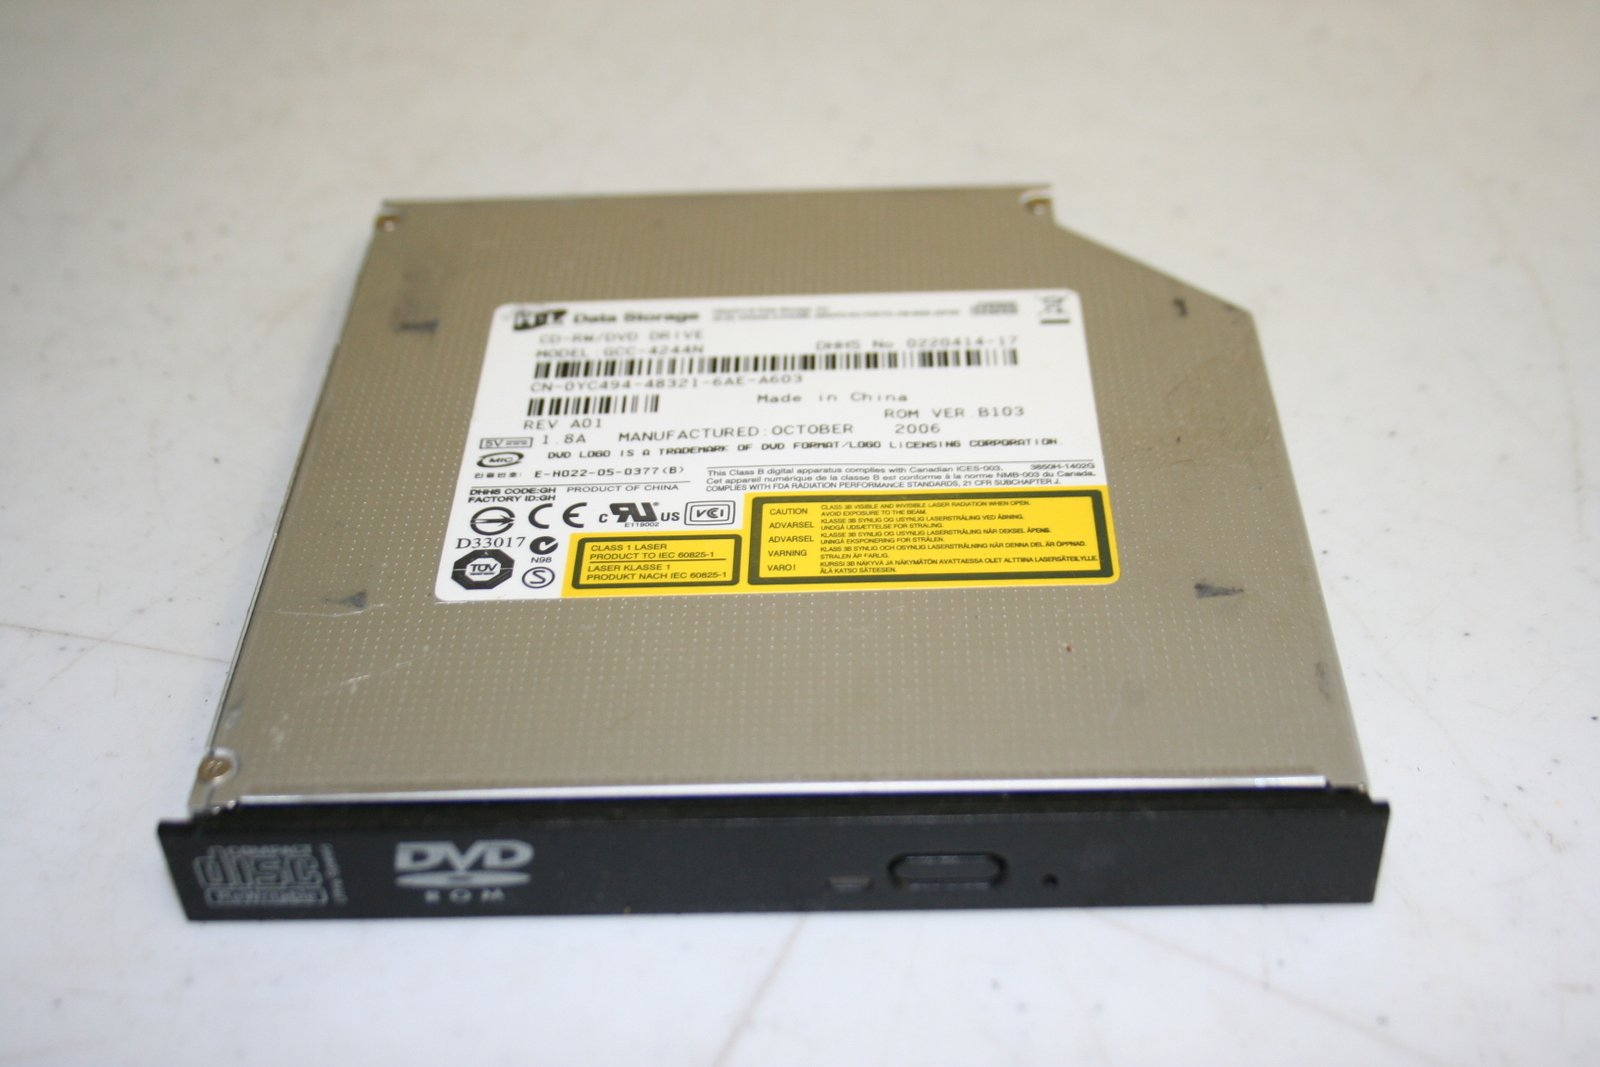 DRIVERS FOR DELL POWEREDGE 1850 HLDS GCC-4244N